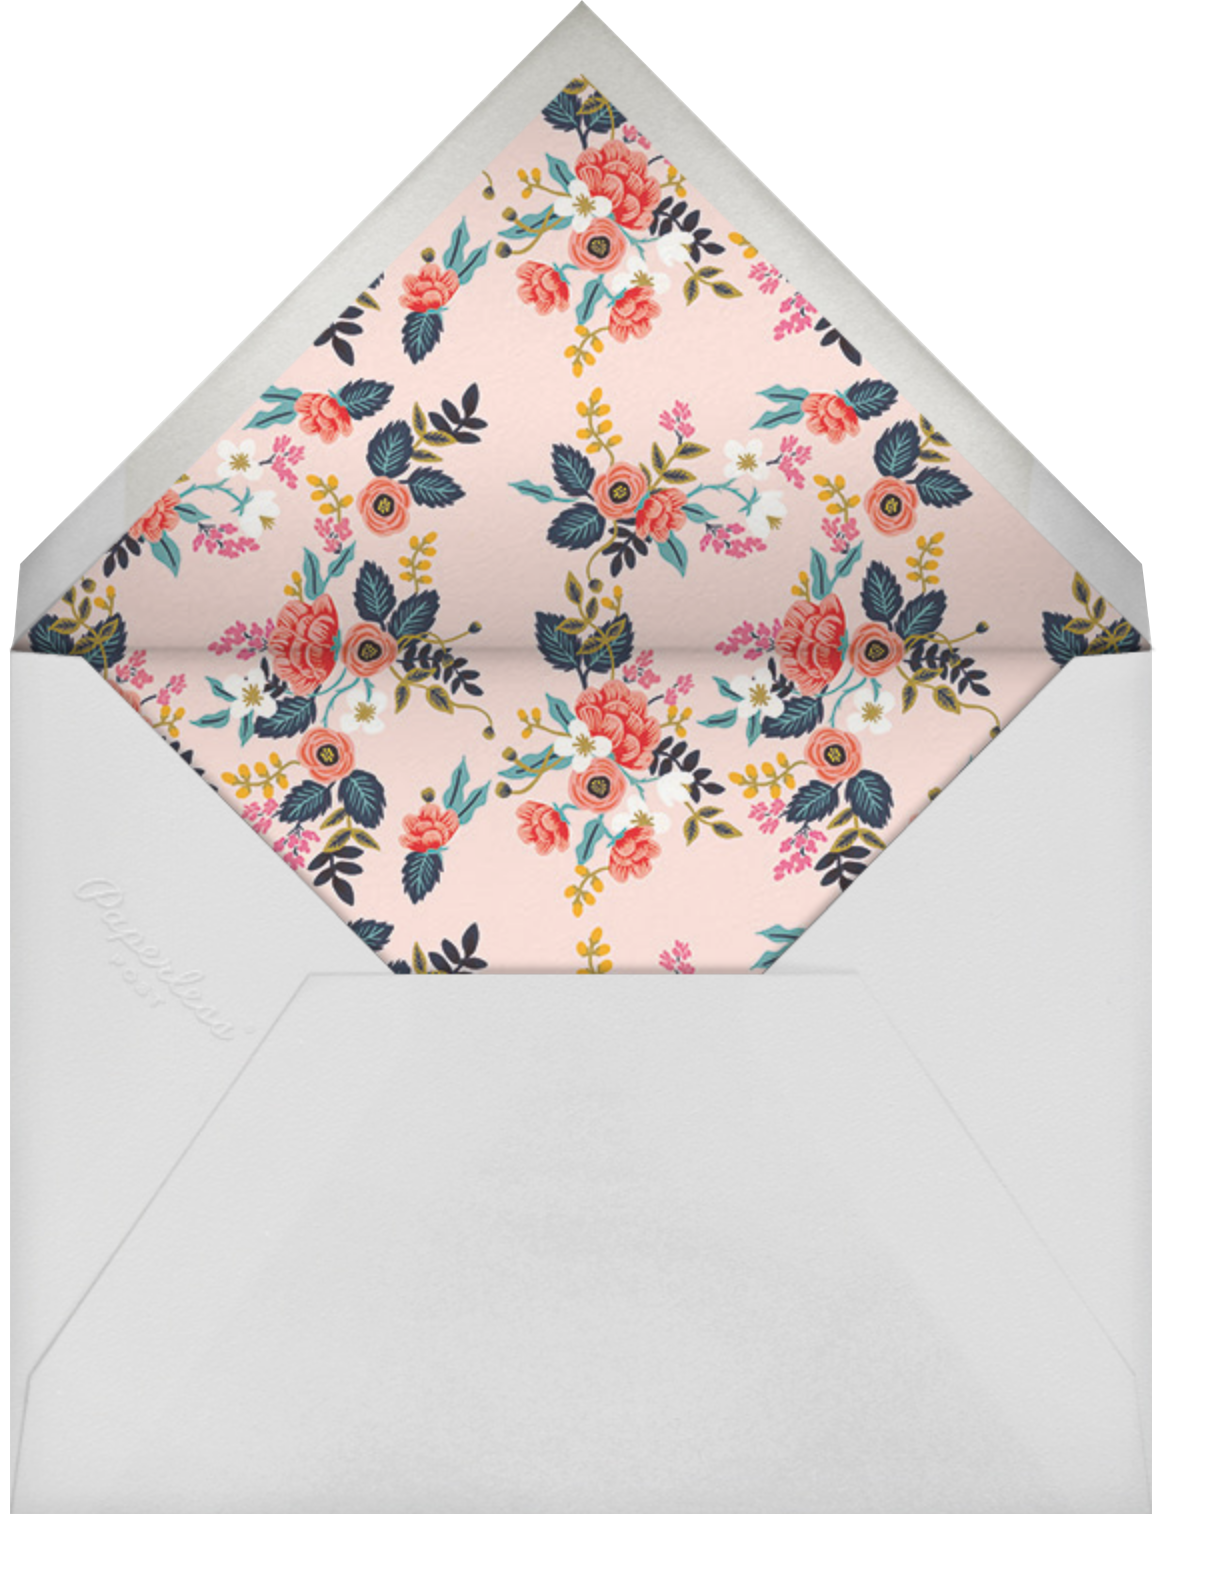 Birch Monarch Suite (Invitation) - White - Rifle Paper Co. - All - envelope back